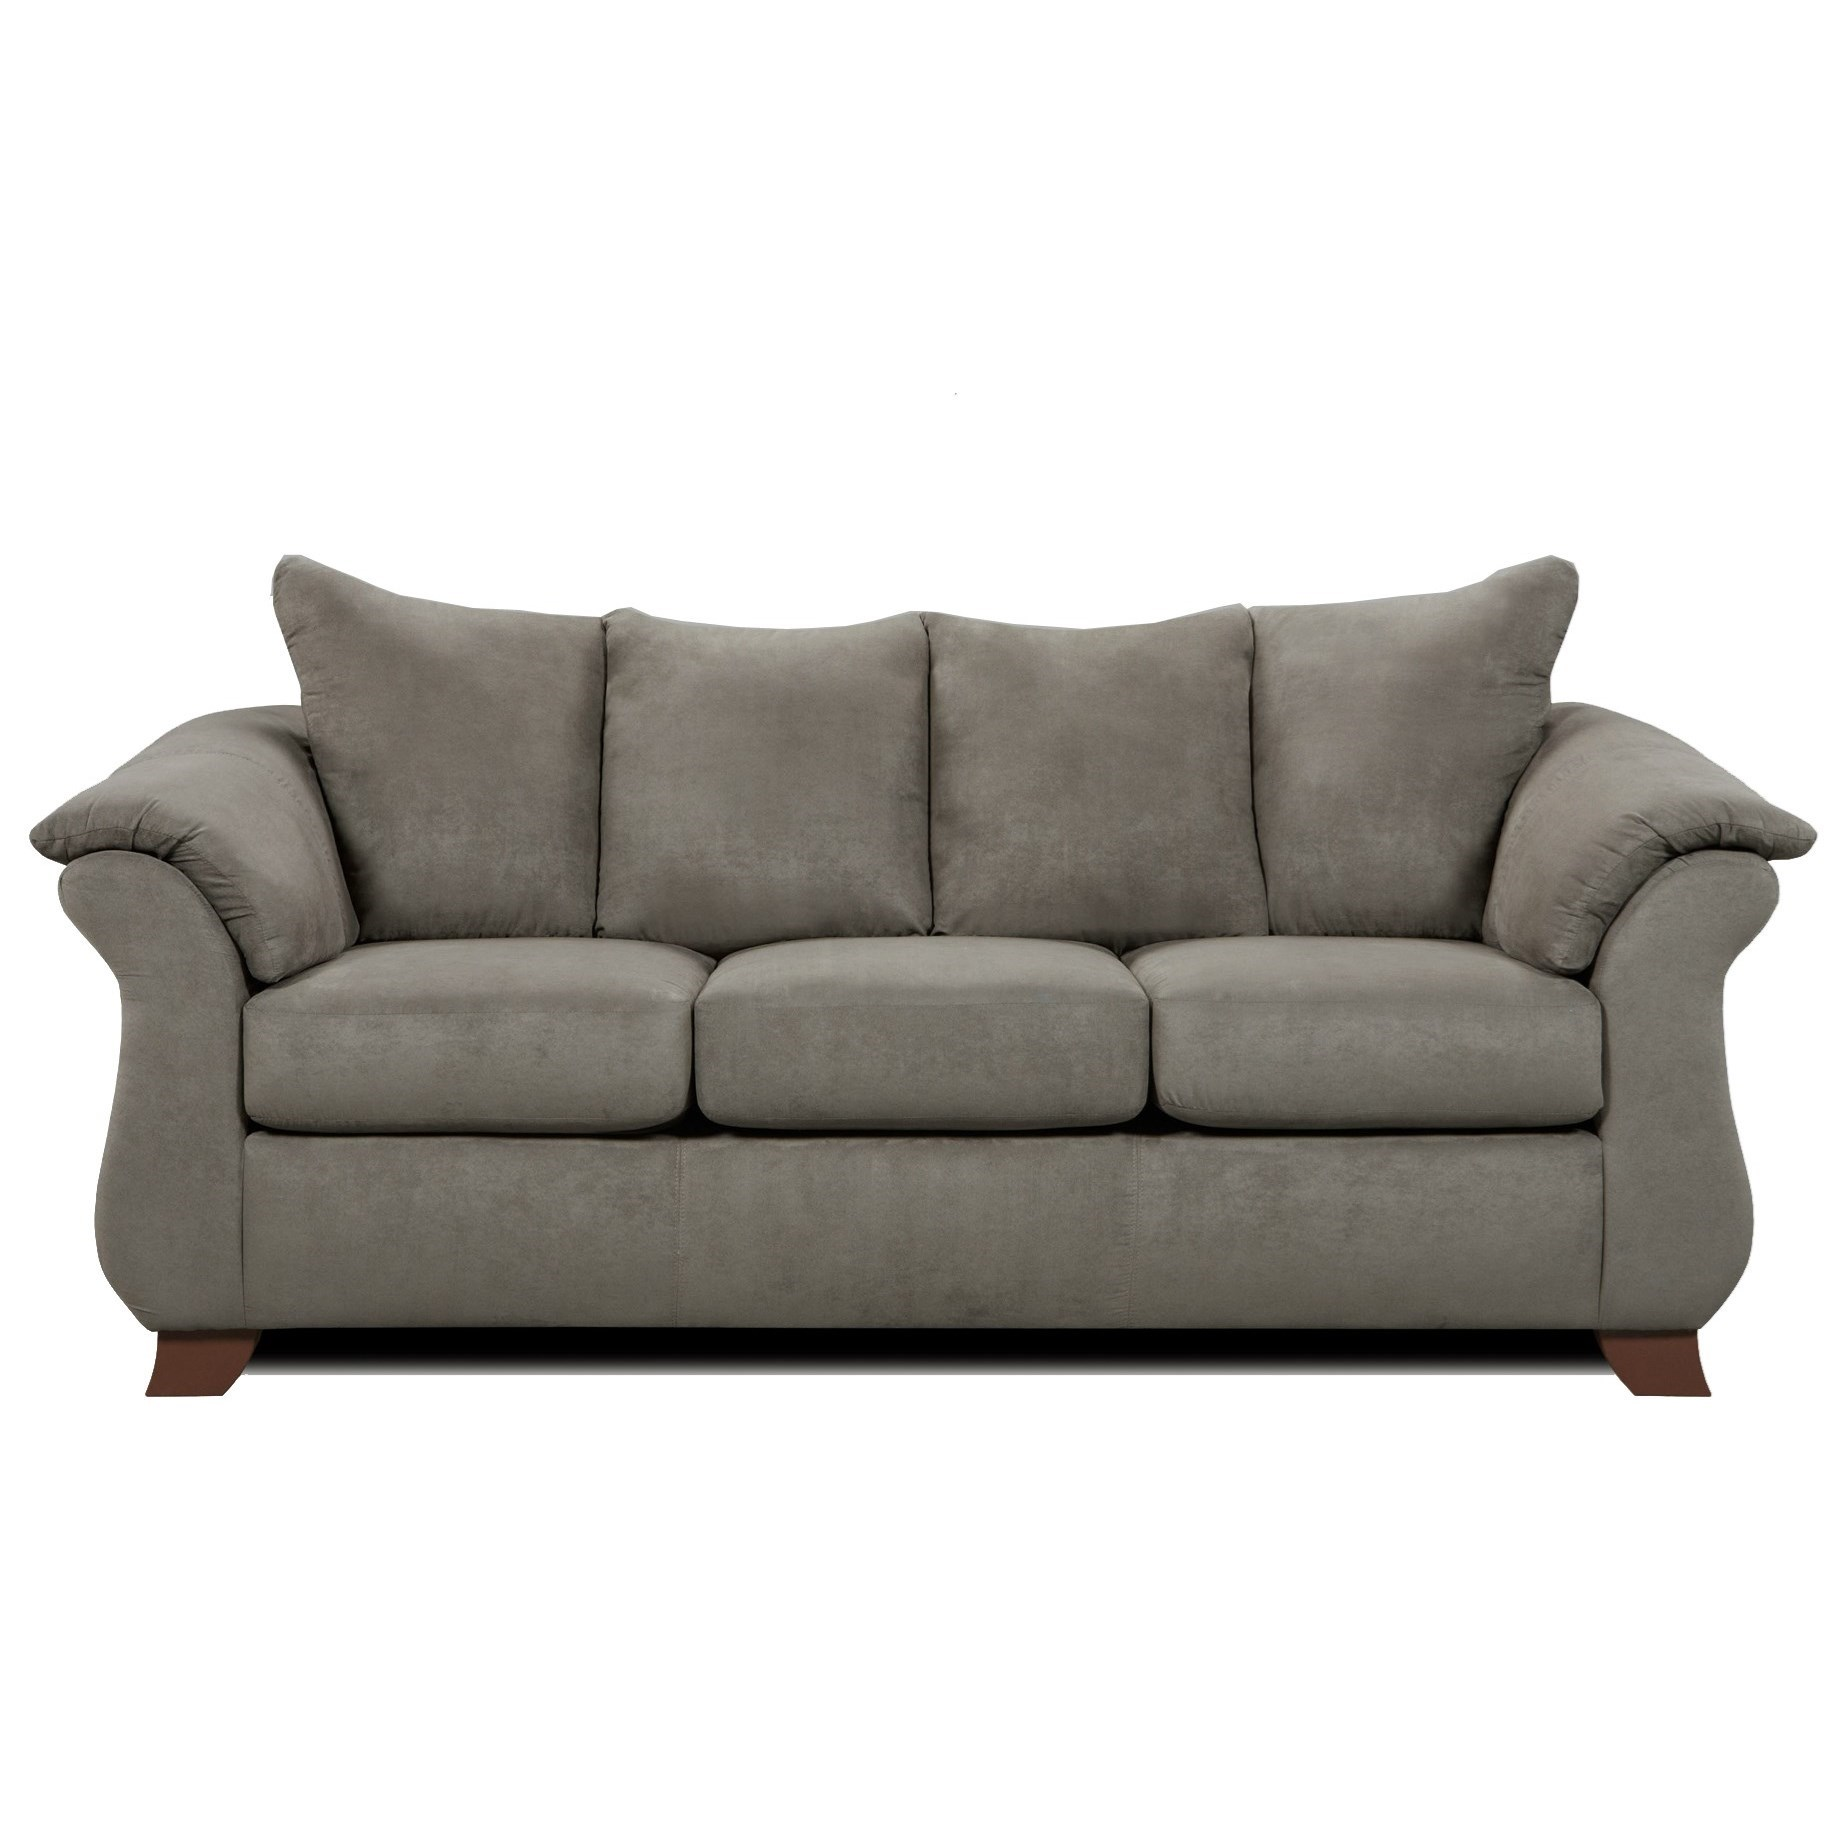 6700 Sofa by Affordable Furniture at Wilcox Furniture